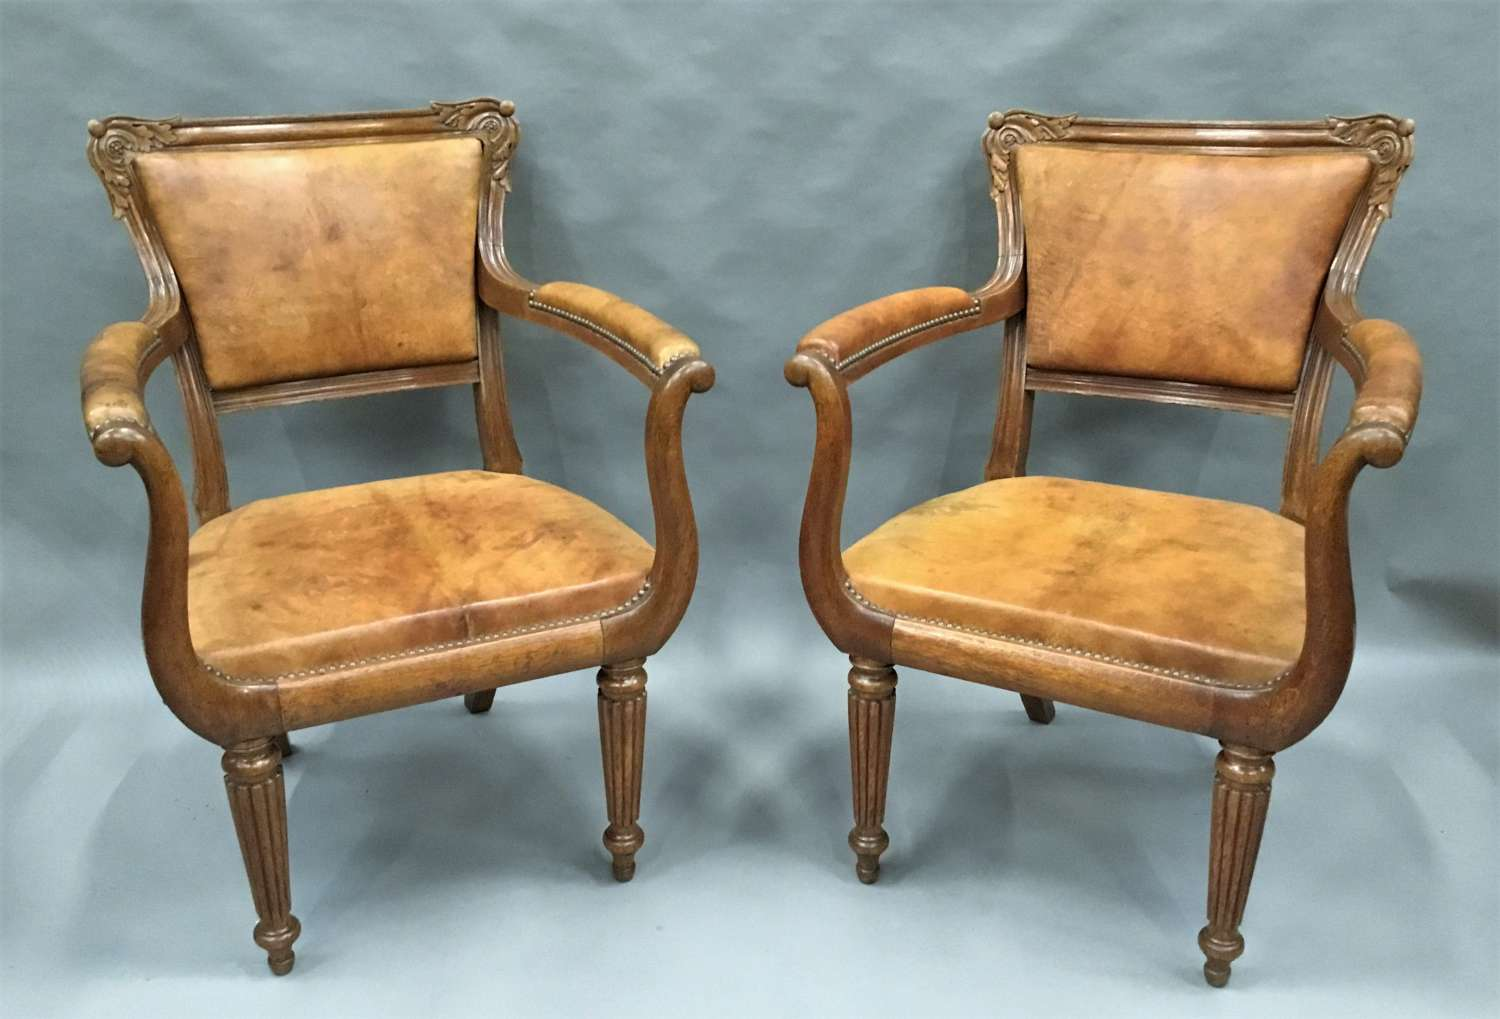 Regency pair of oak and leather library chairs